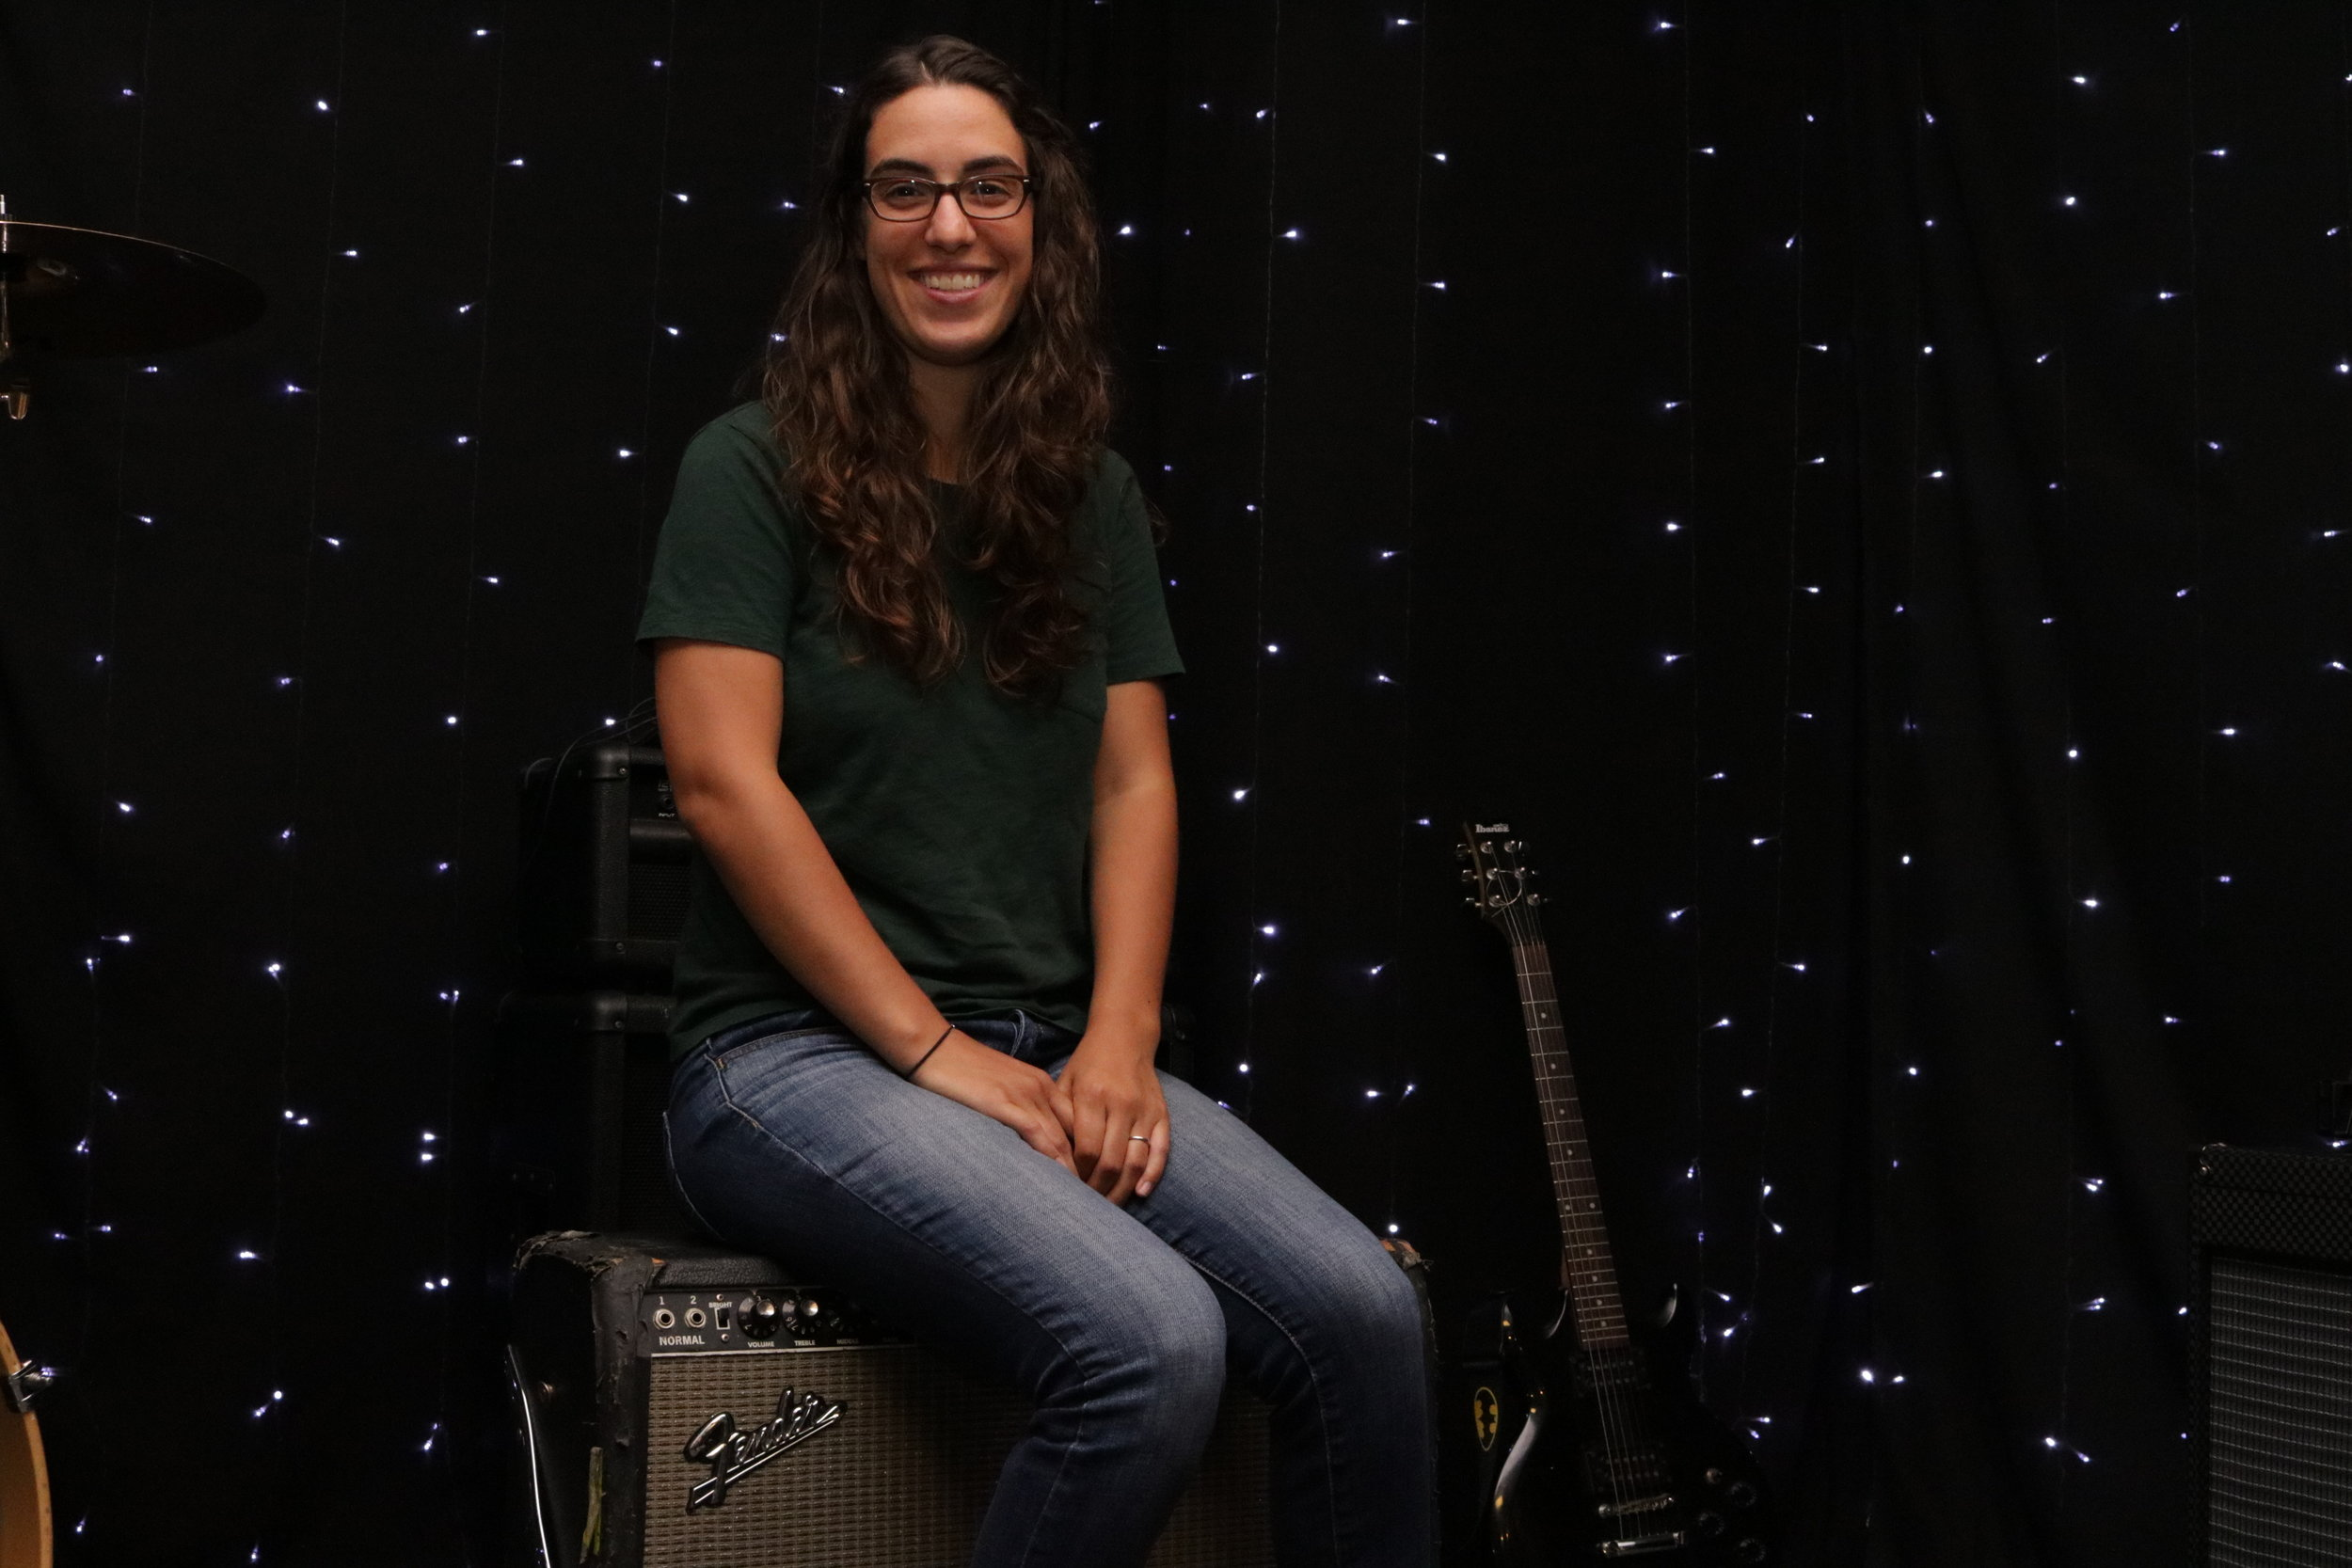 Caitlin Moss - co-founder and owner/Station Manager